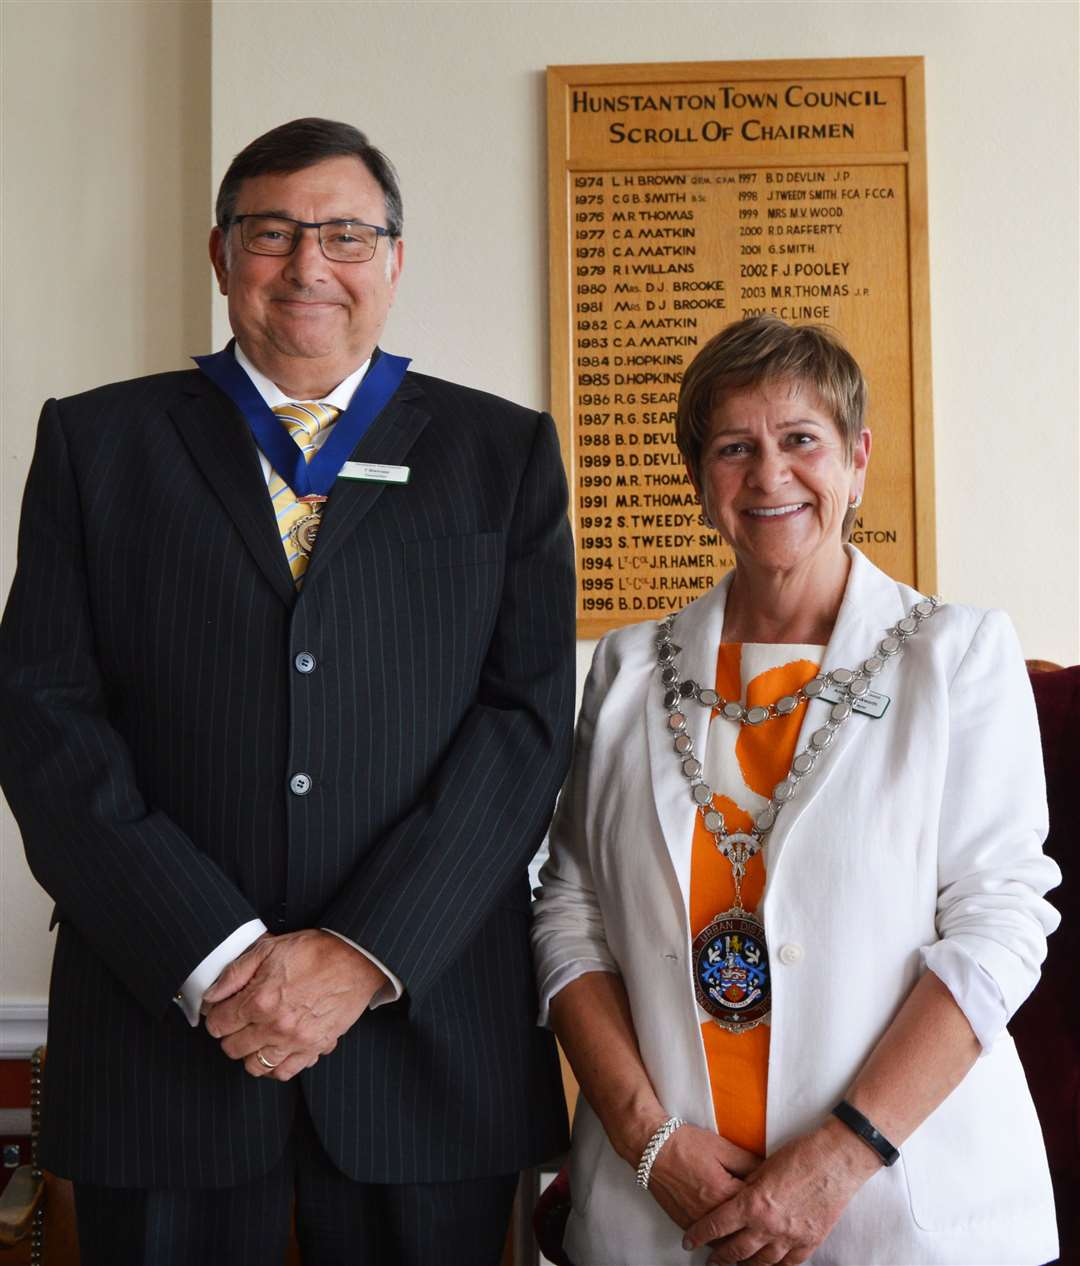 Tony Bishopp, left, paid tribute to his predecessor Amanda Bosworth, right, as he took the role of Hunstanton mayor